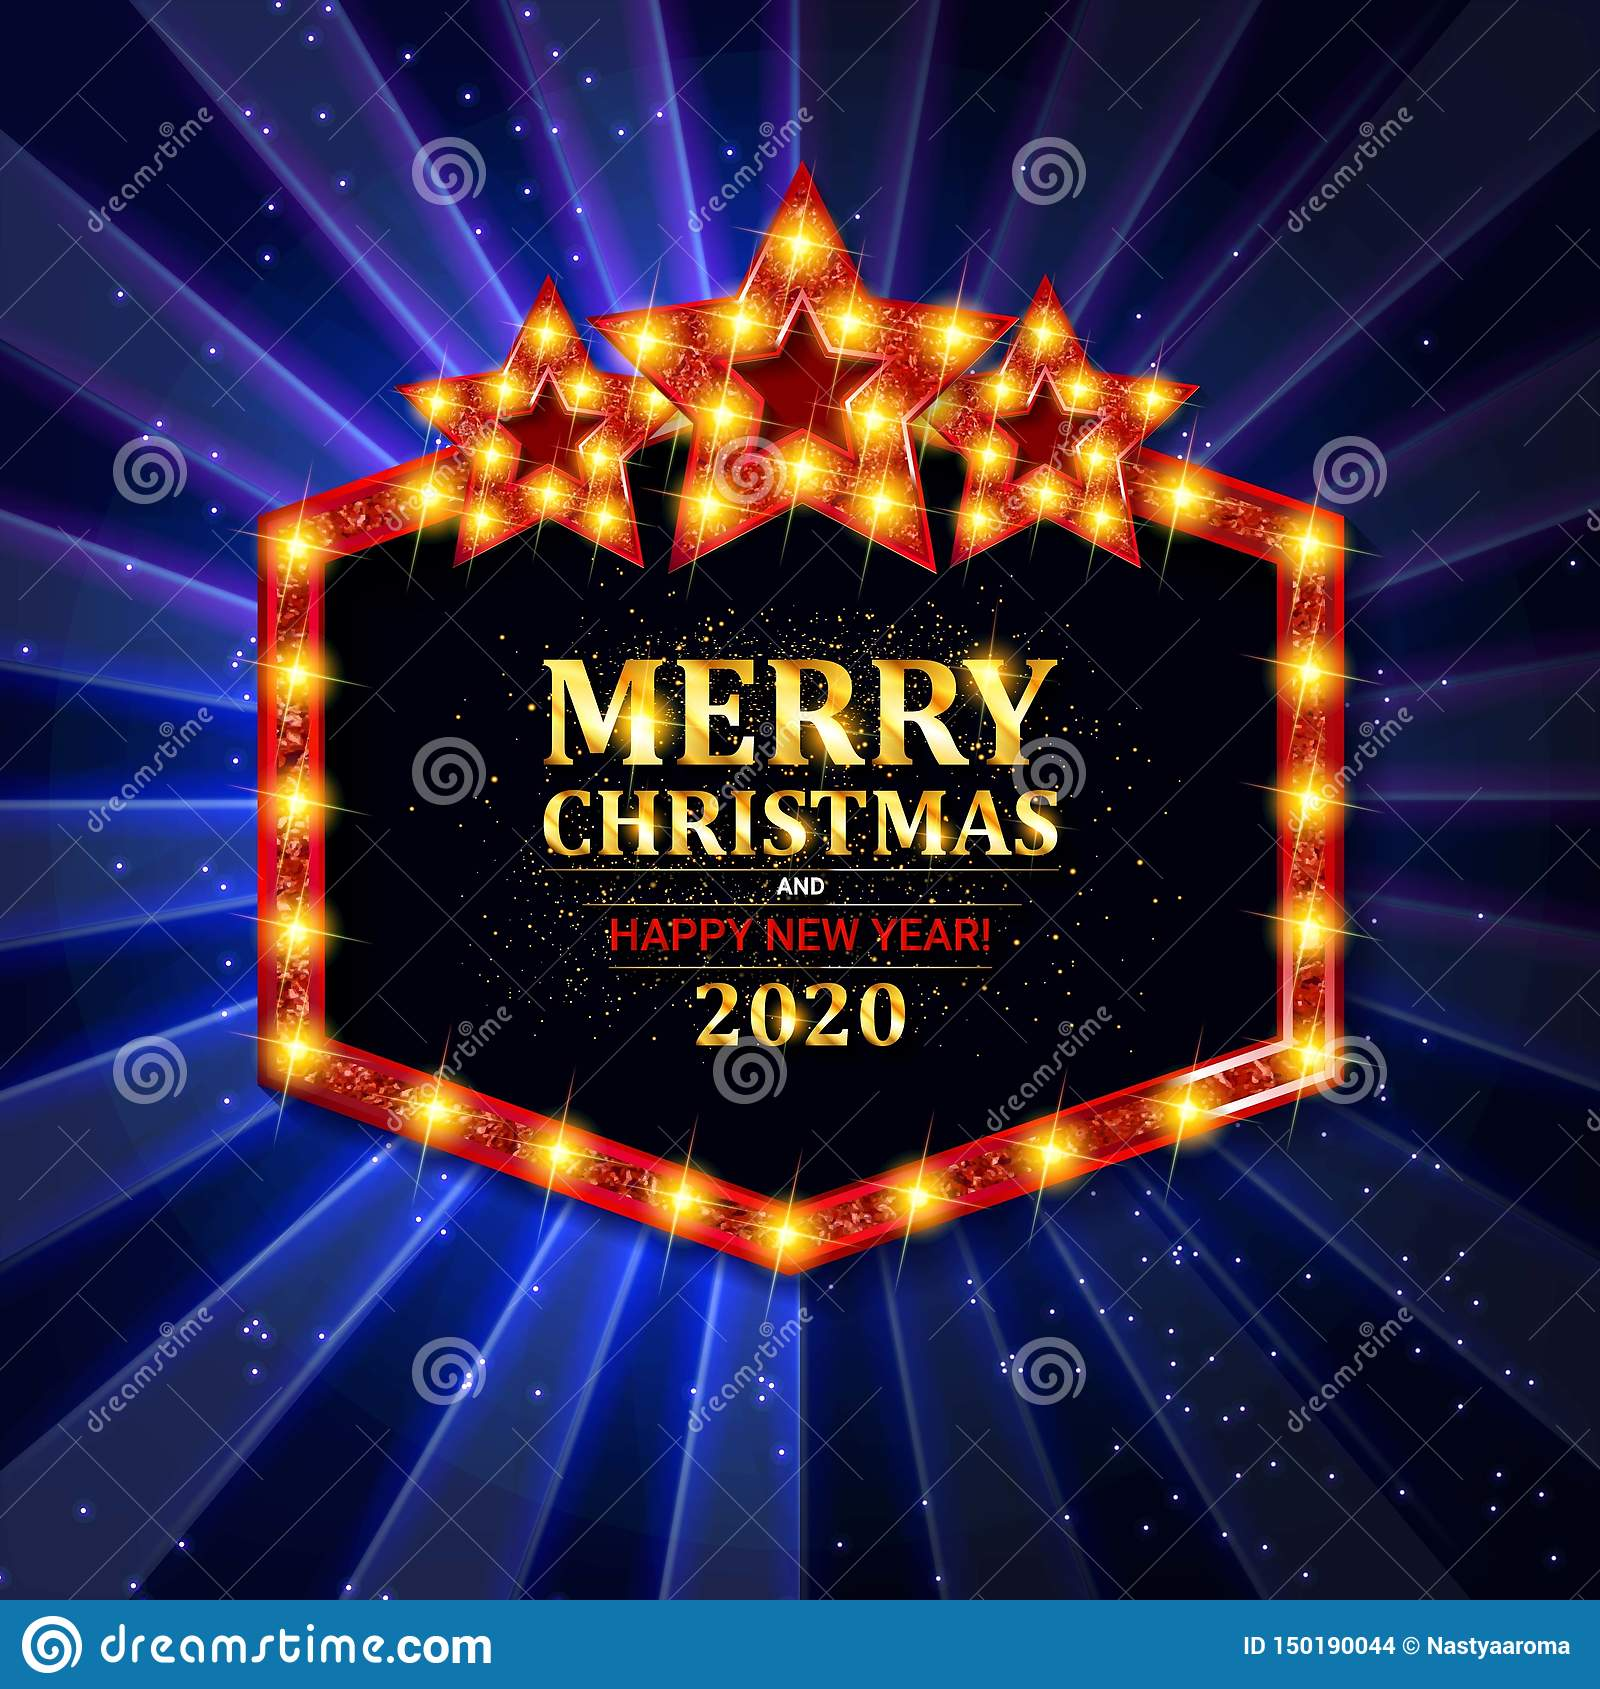 vector christmas and new year 2020 wishes on card stock vector illustration of frame design 150190044 https www dreamstime com vector christmas new year wishes card related ornaments objects color background illustration image150190044